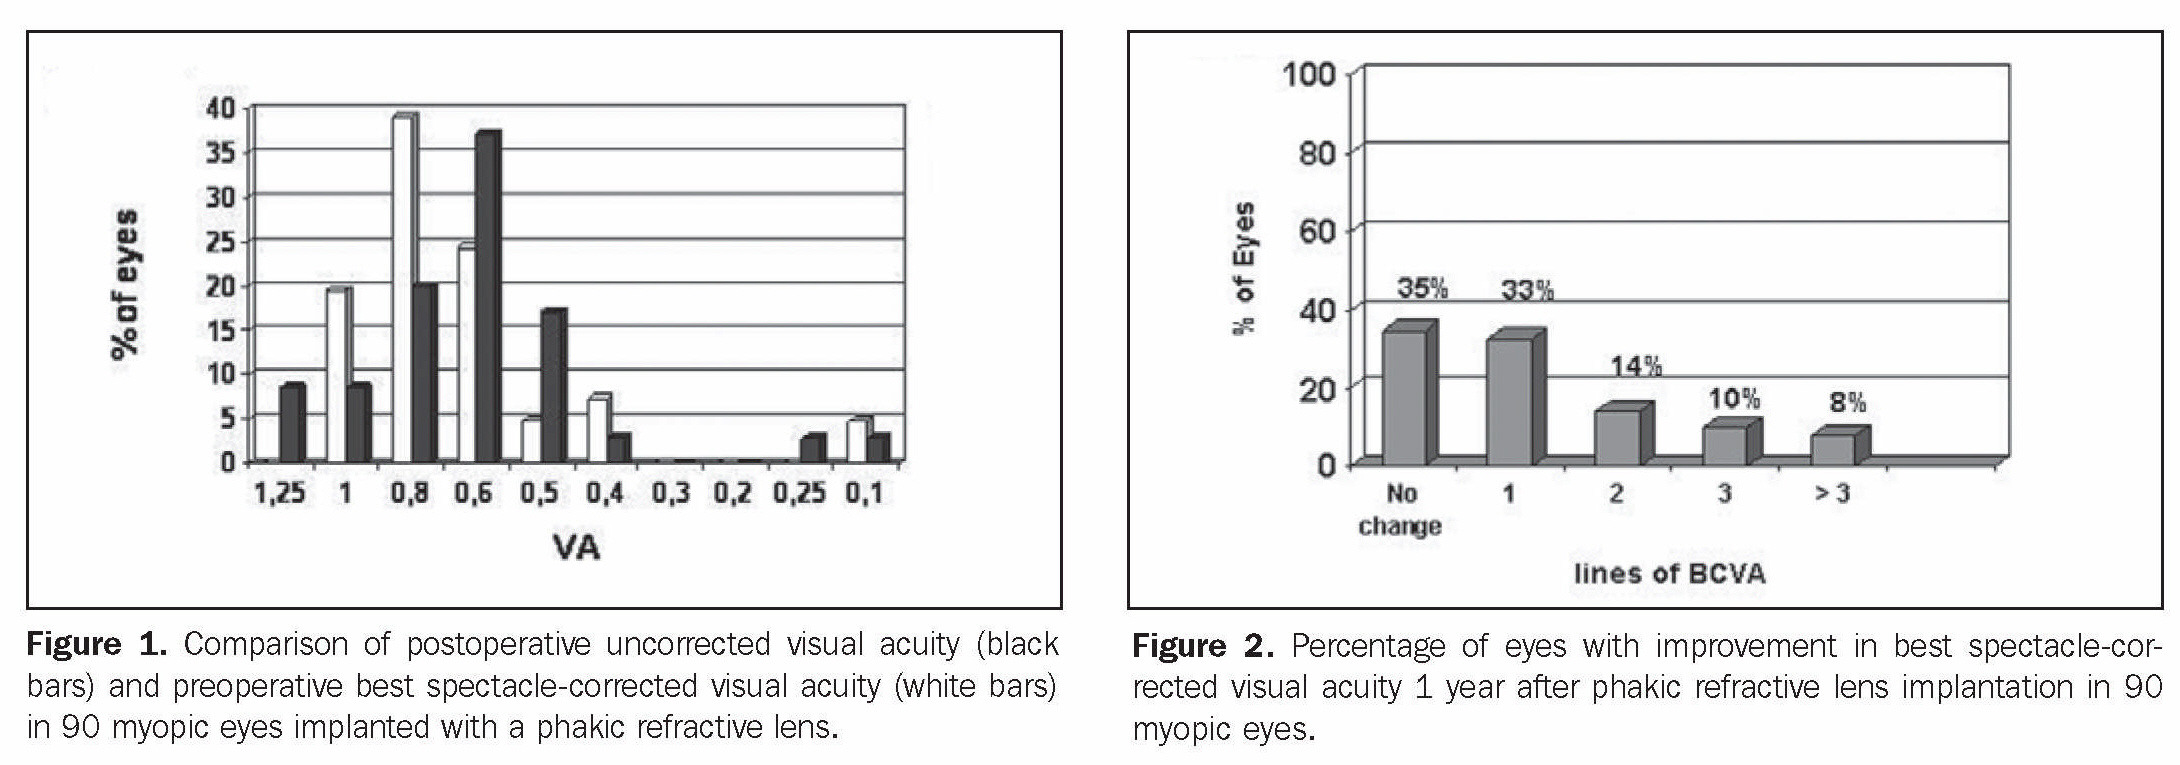 Figure 1. Comparison of postoperative uncorrected visual acuity (black bars) and preoperative best spectacle-corrected visual acuity (white bars) in 90 myopic eyes implanted with a phakic refractive lens.Figure 2. Percentage of eyes with improvement in best spectacle-corrected visual acuity 1 year after phakic refractive lens implantation in 90 myopic eyes.